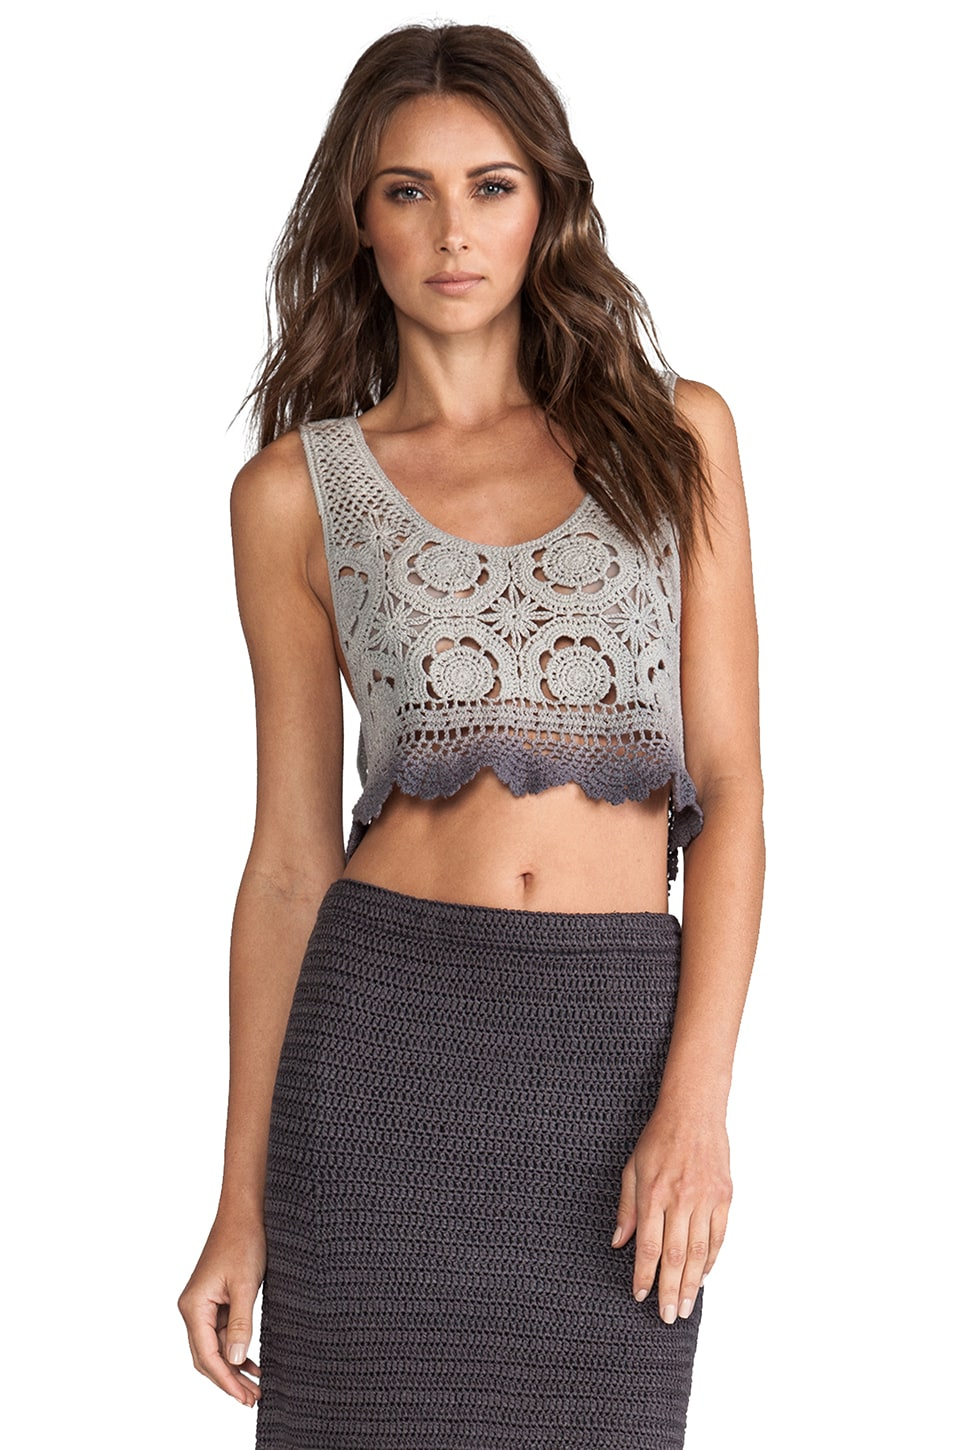 Lisa Maree By The Wayside Crochet Top in Acid Black Ombre